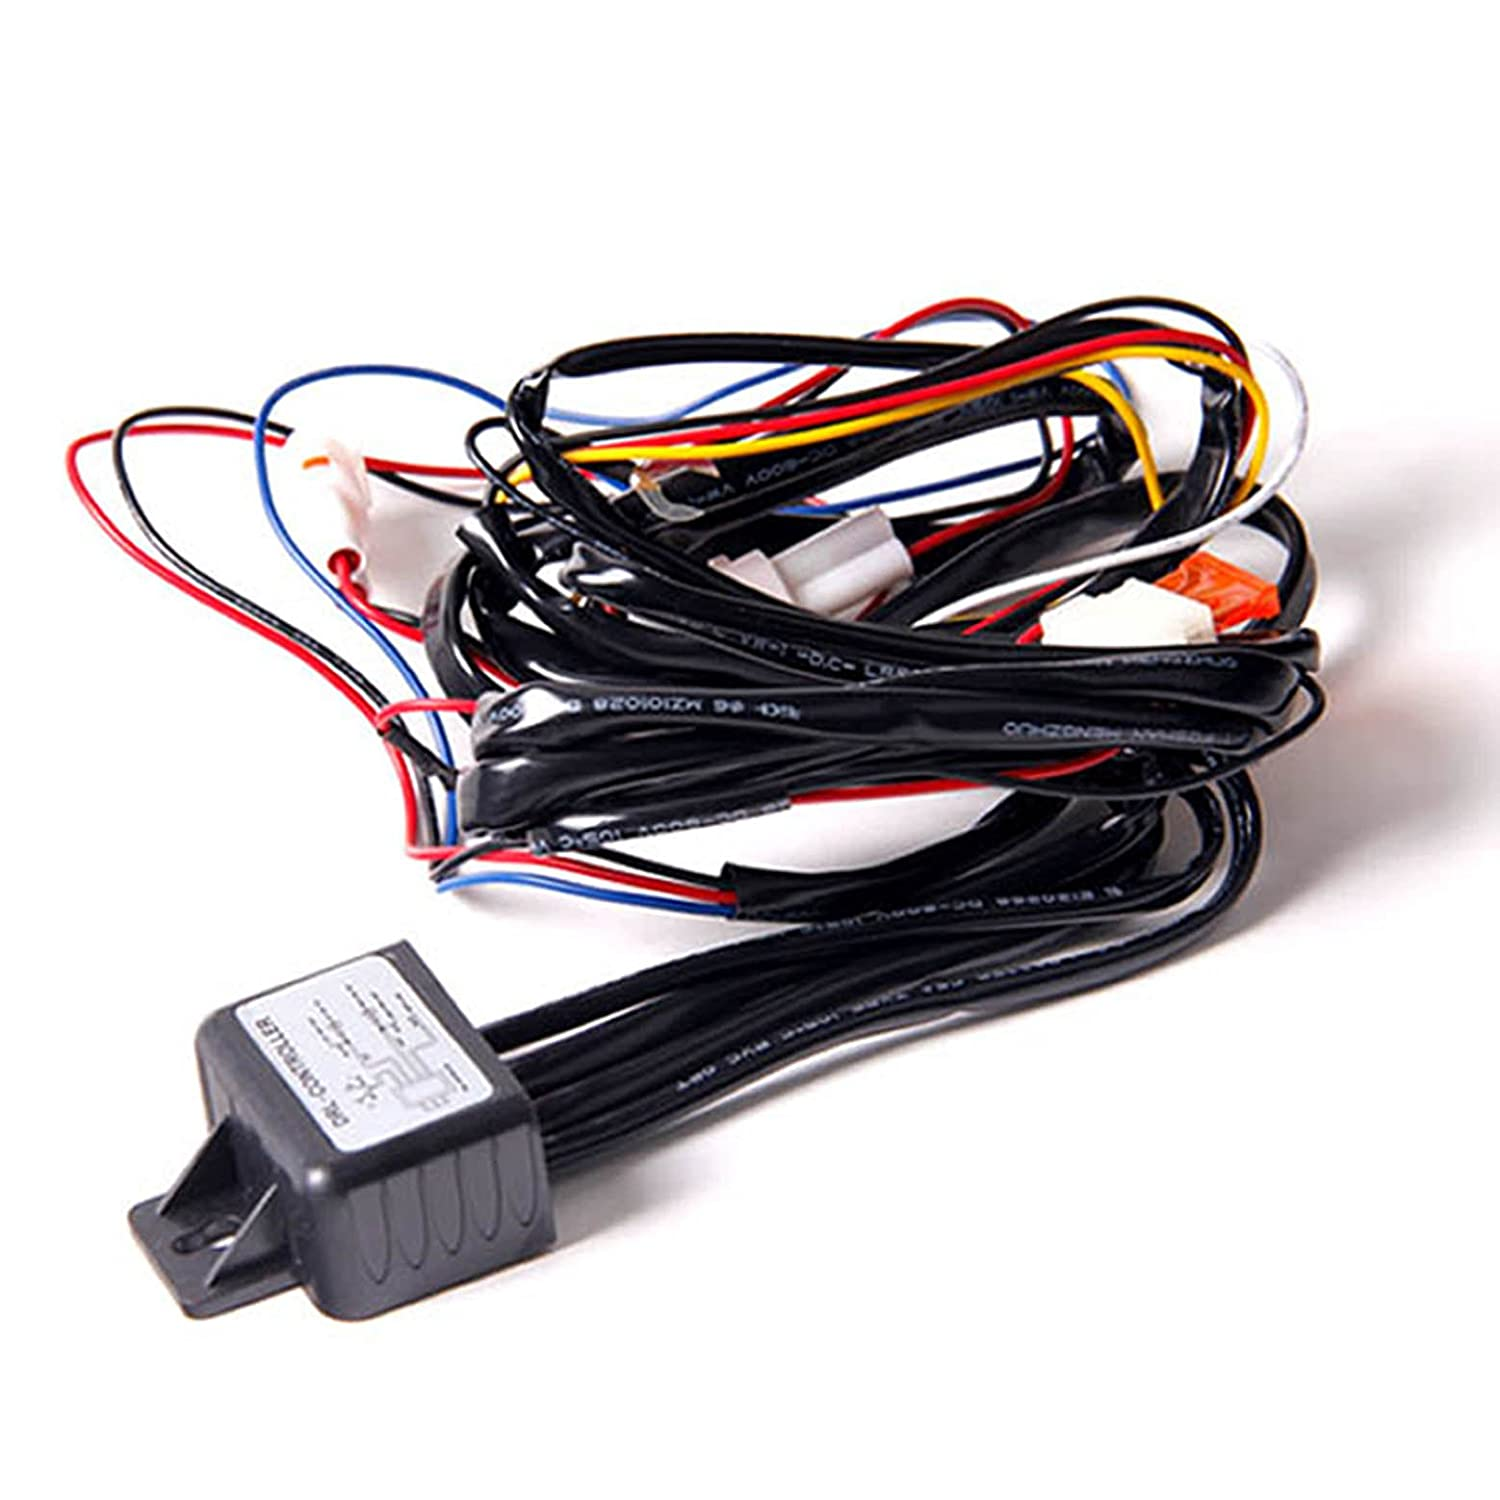 Wadoy LED Daytime Running Light DRL Relay Harness Automatic On Off Control